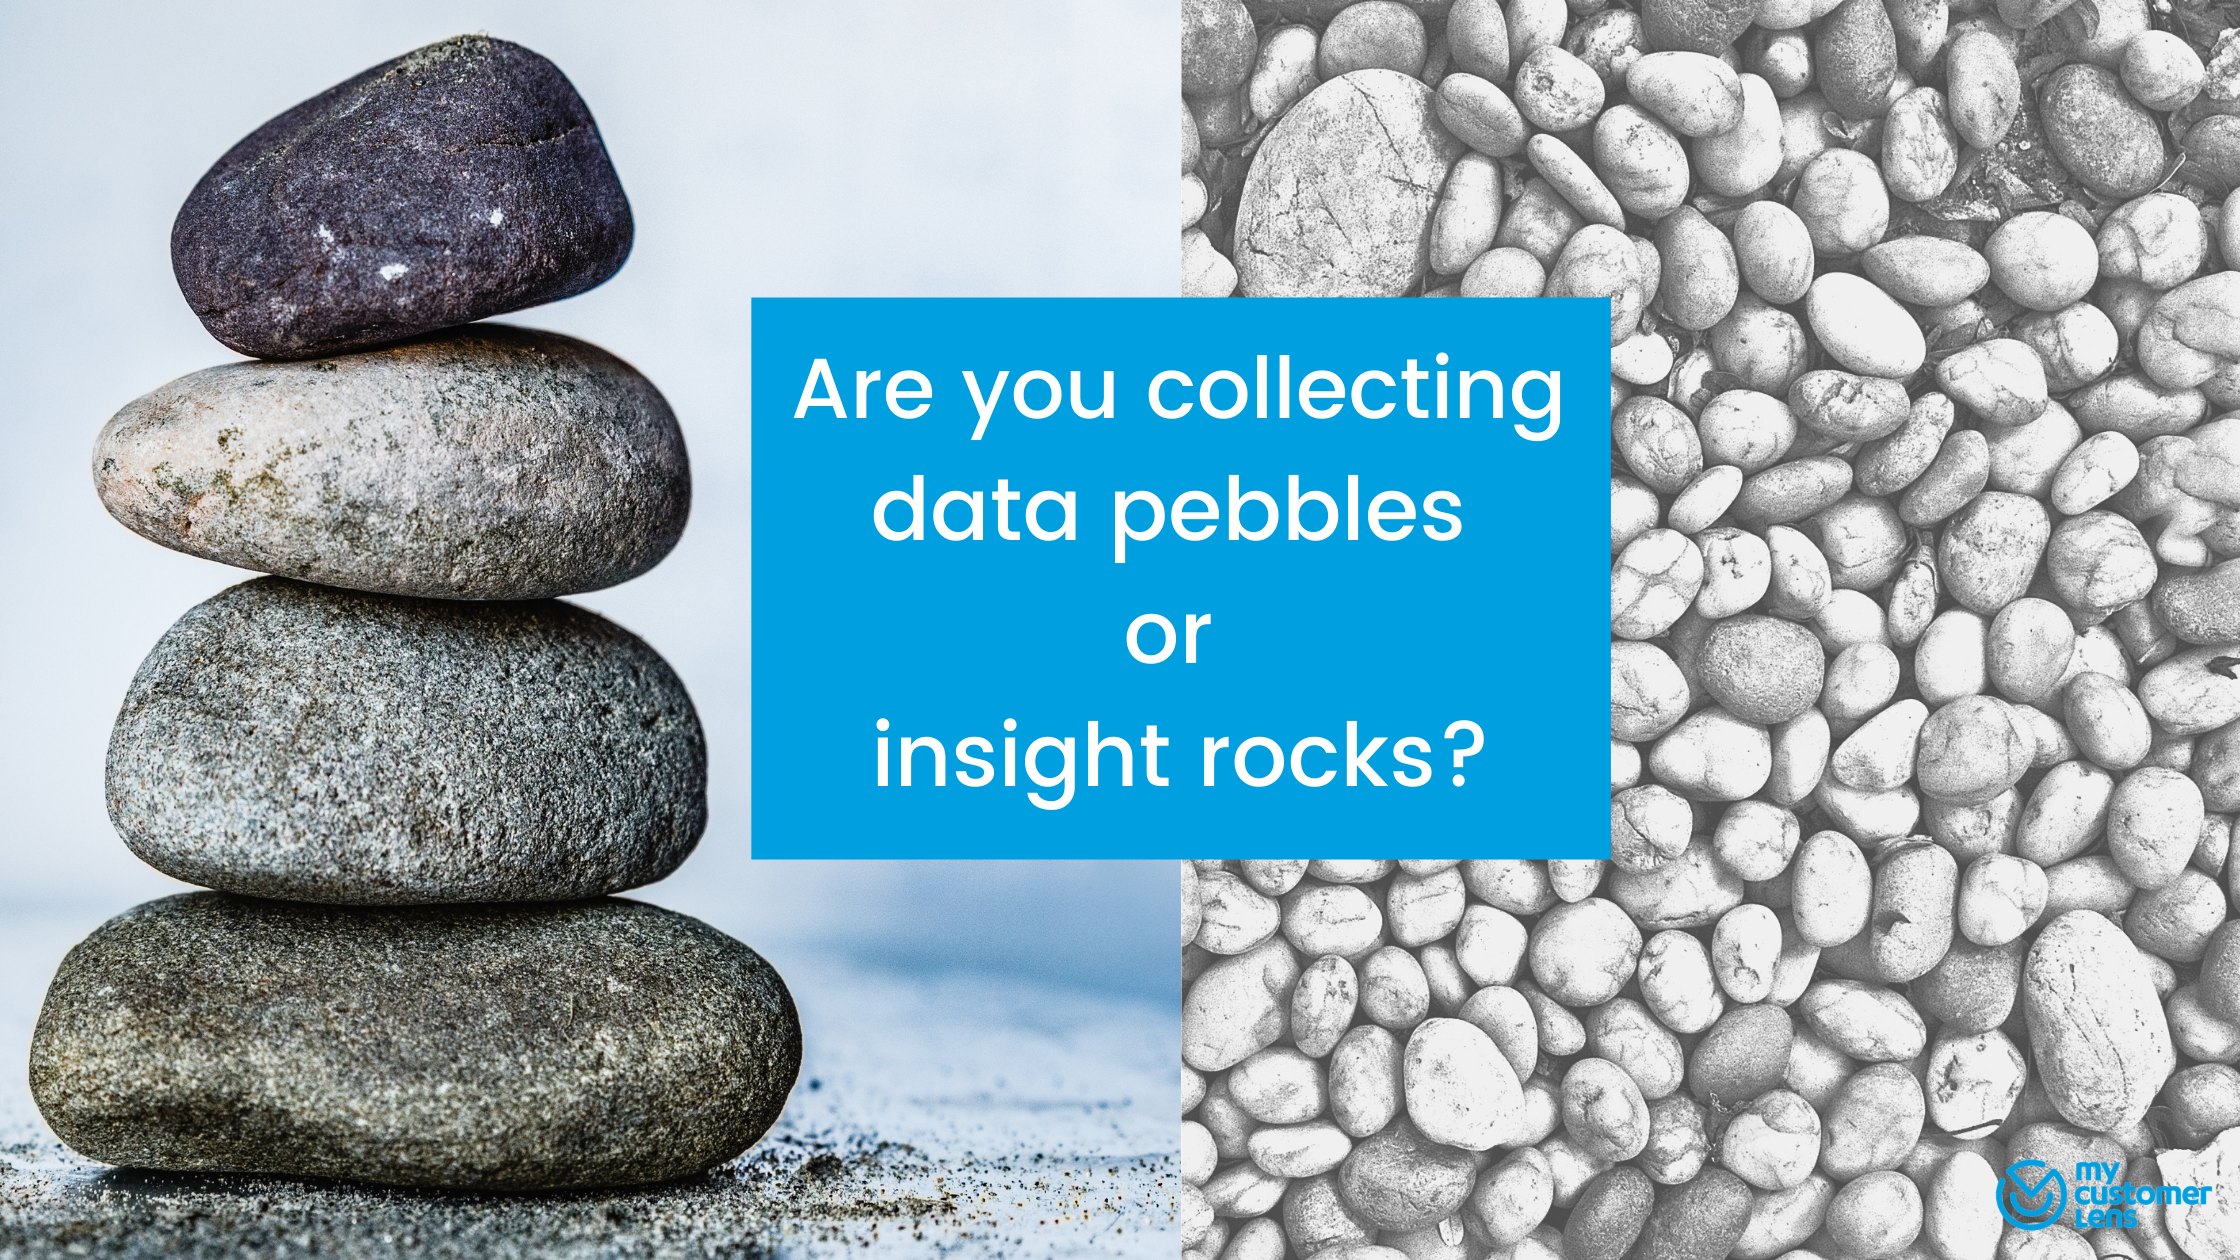 Are you collecting data pebbles or insight rocks